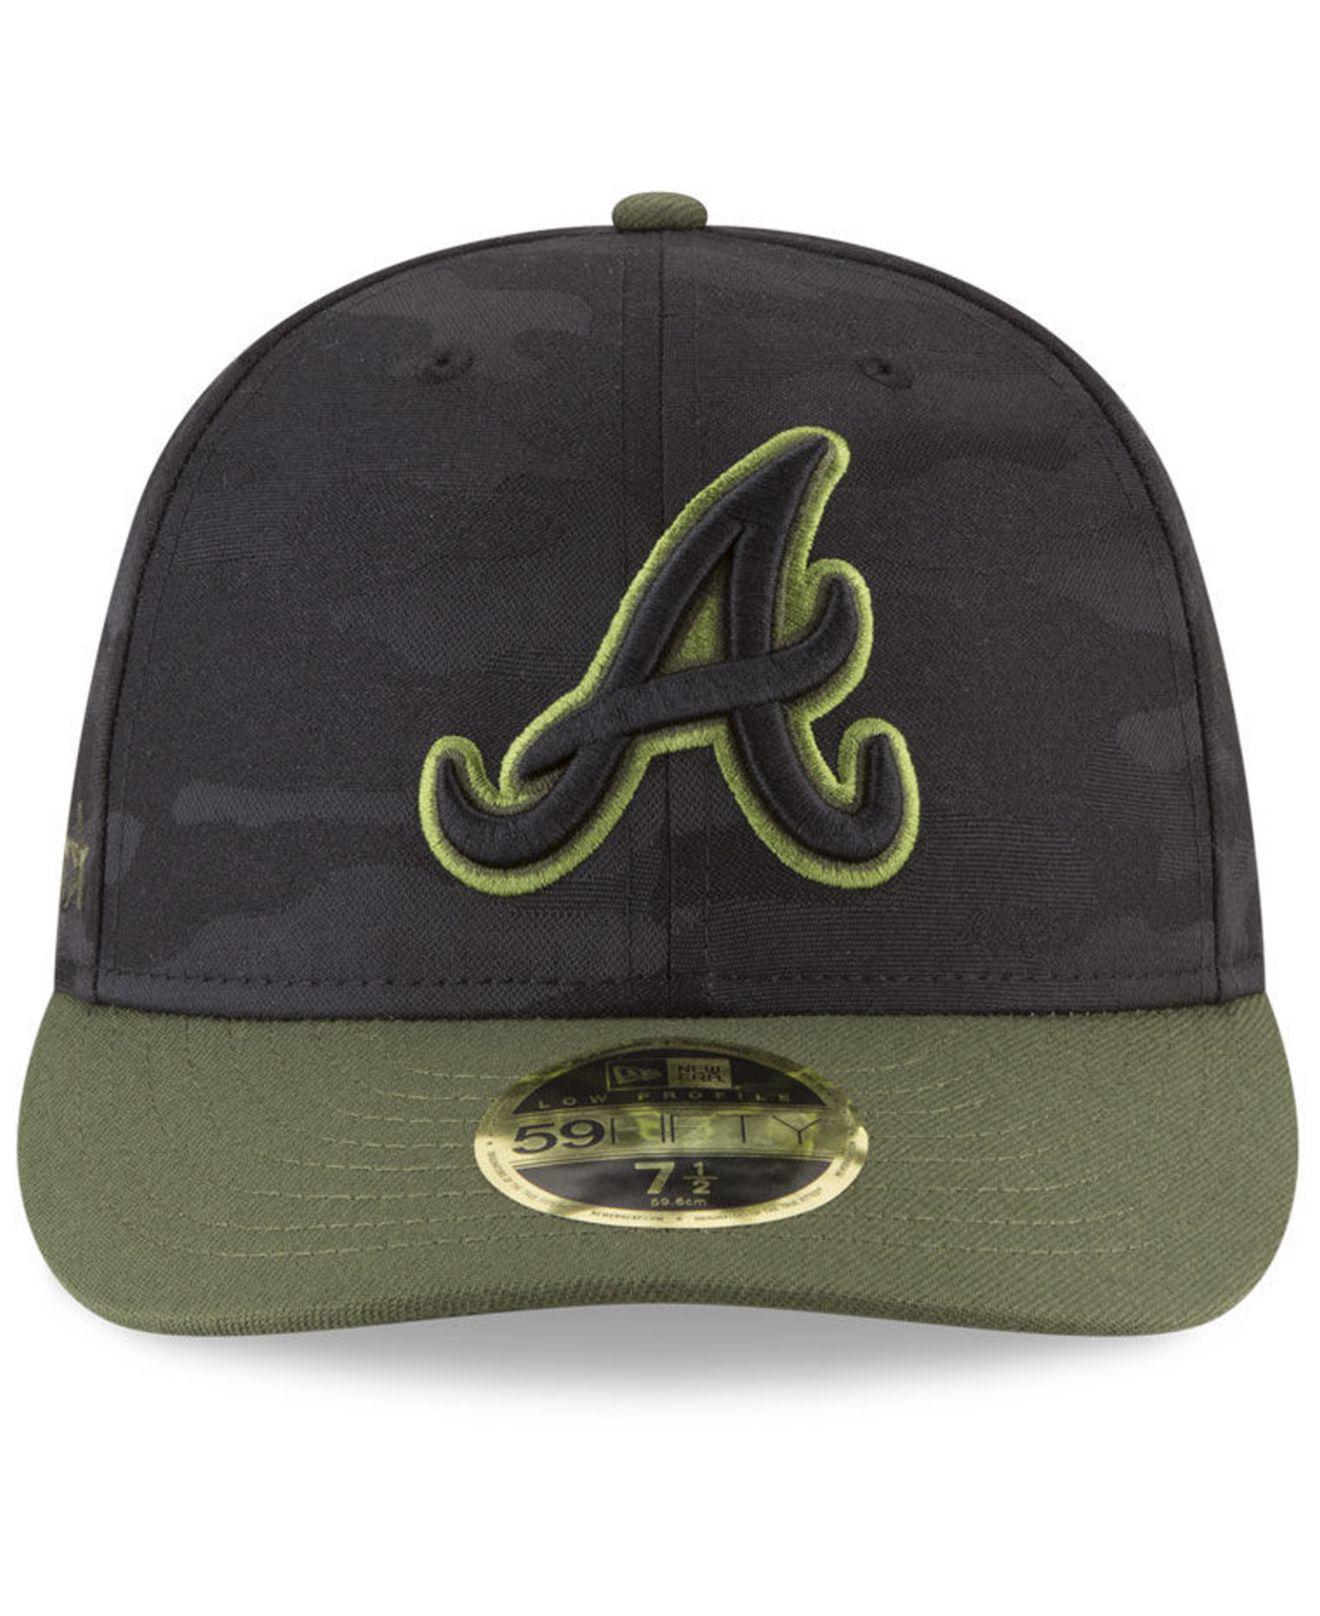 dcd4ce0acba ... shopping lyst ktz atlanta braves memorial day low profile 59fifty  fitted cap in green for men